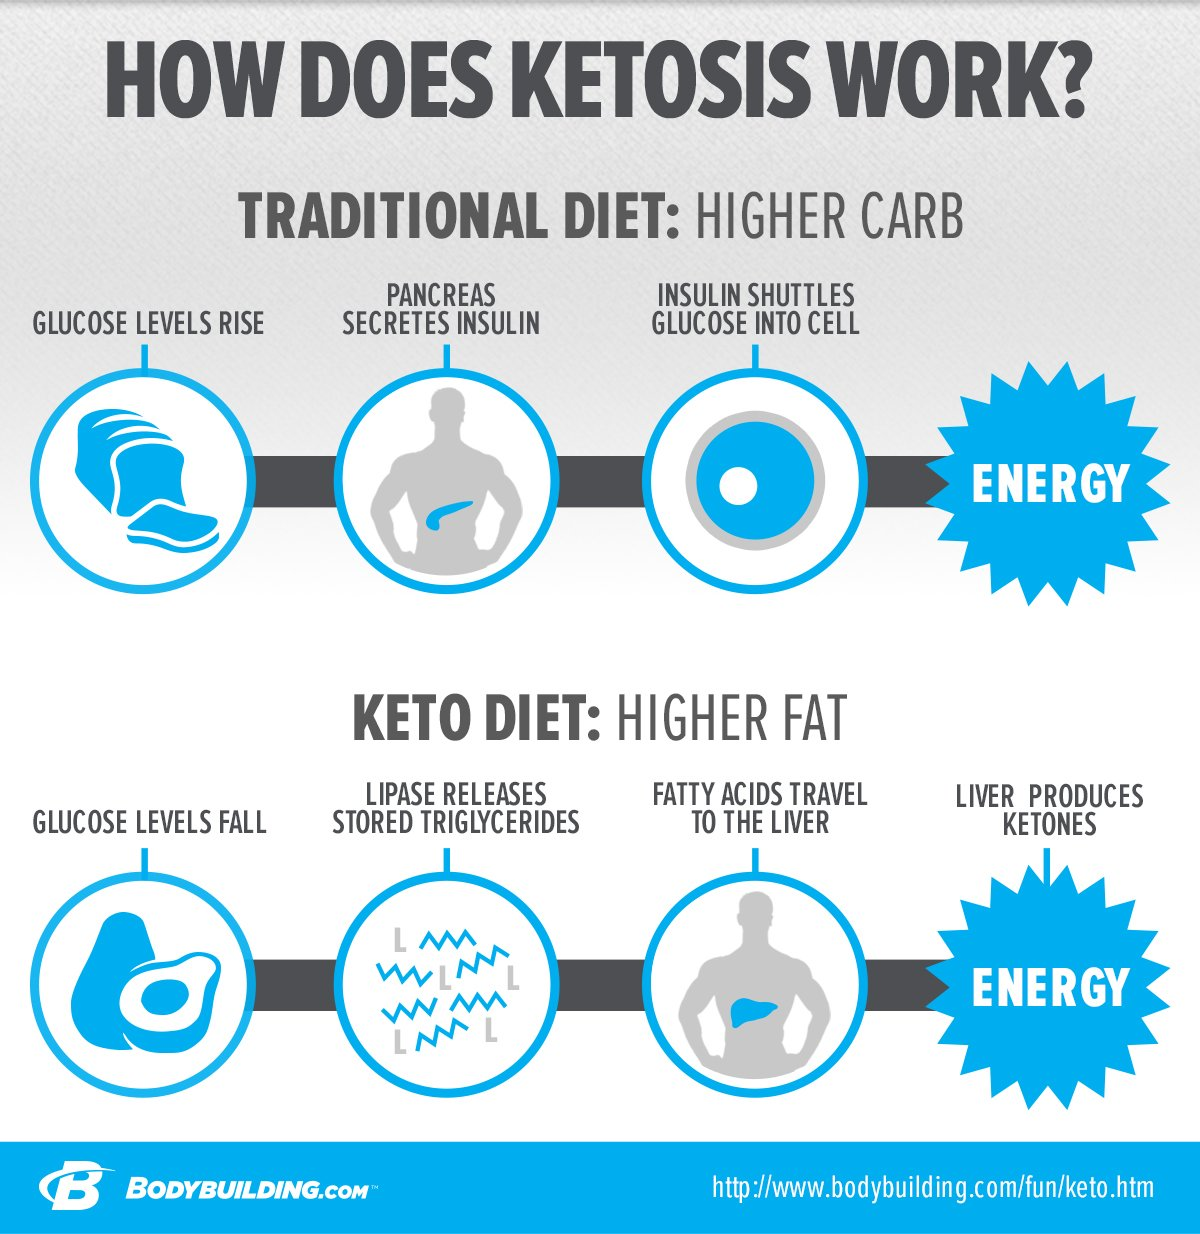 in-depth-look-at-ketogenic-diets-and-ketosis-v2-2.jpg